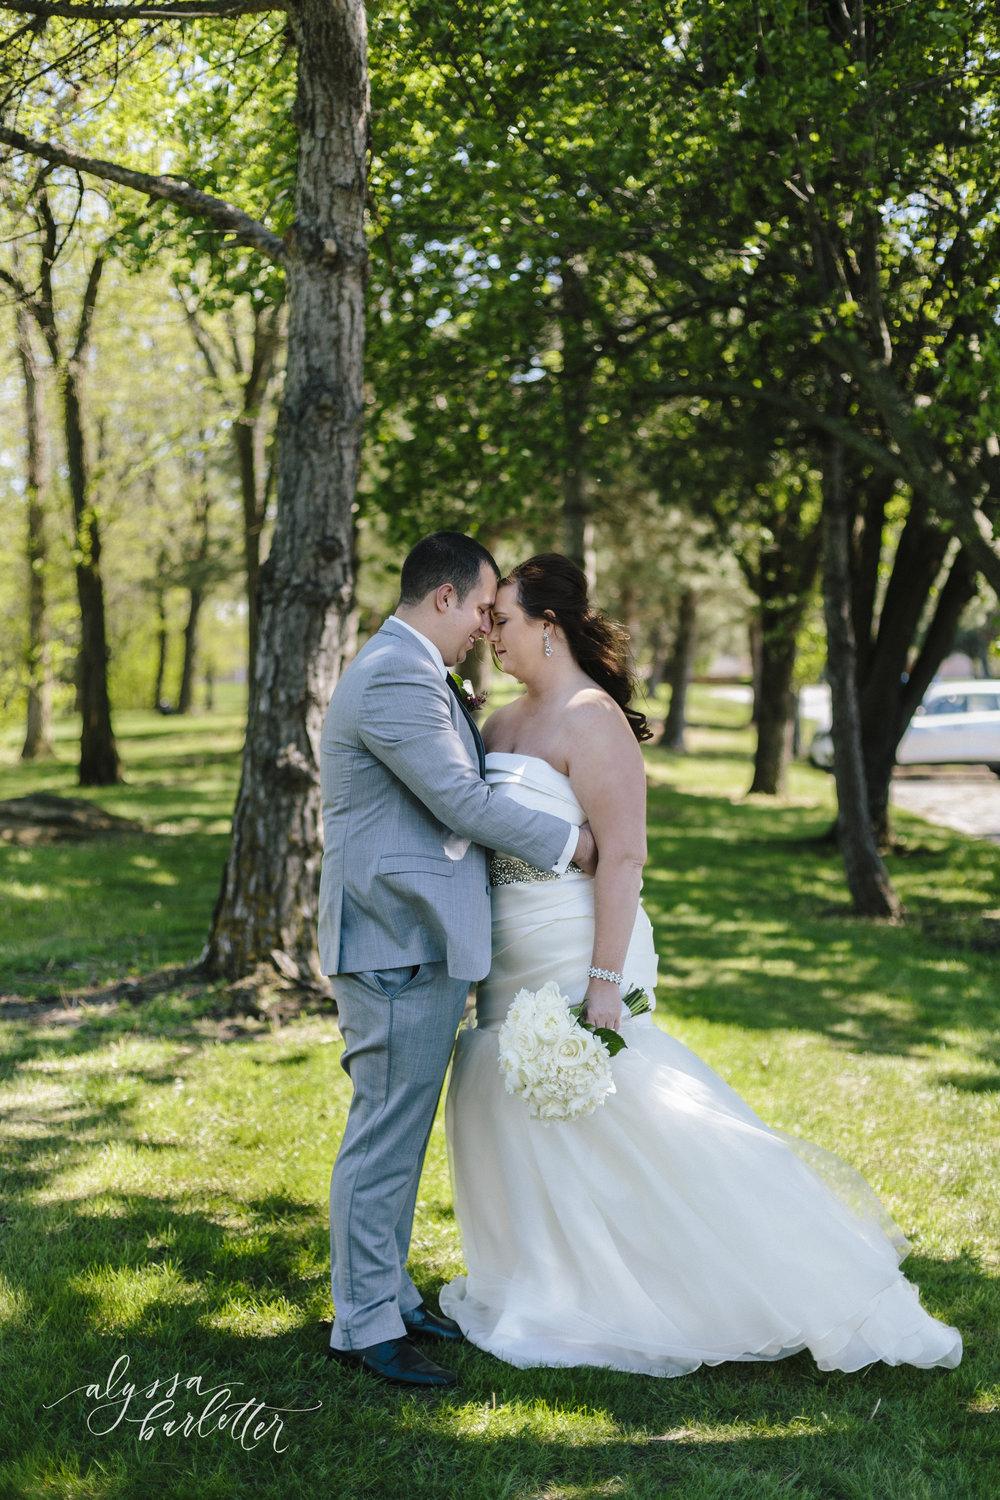 alyssa barletter photography kansas city wedding golf course boulevard brewery-1-36.jpg